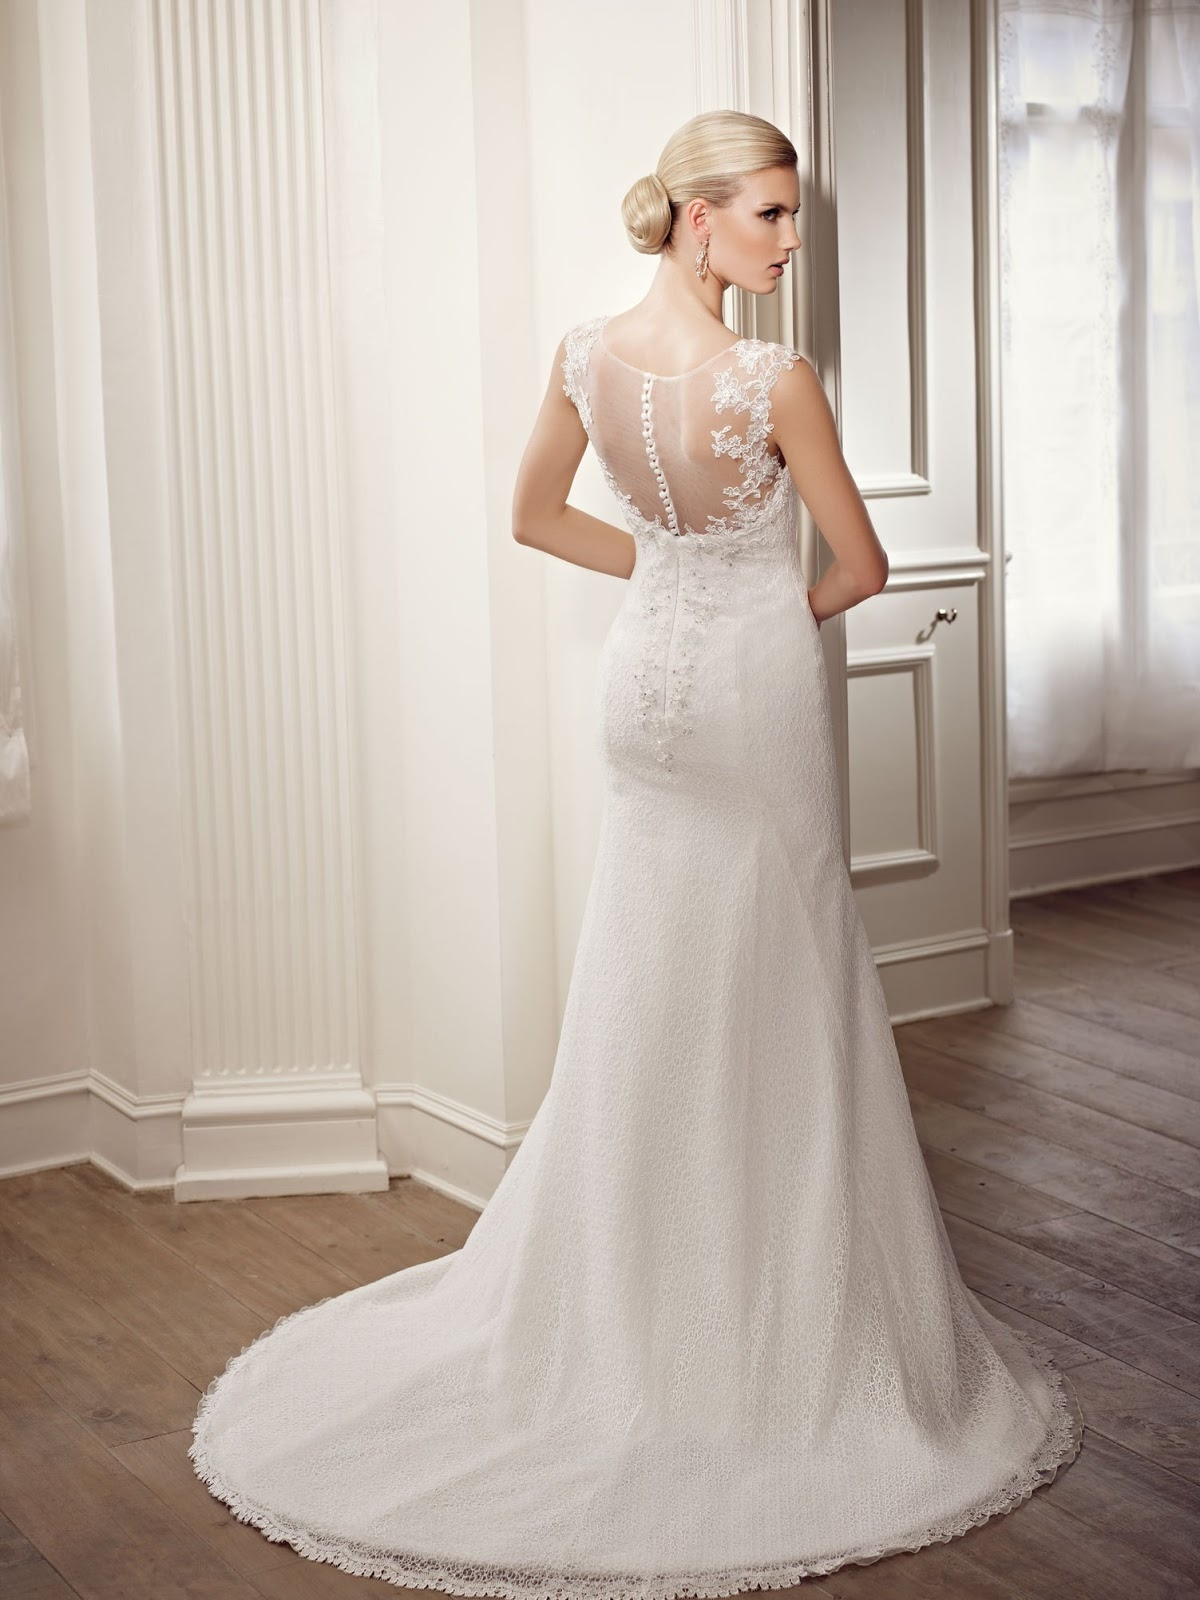 Elianna Moore 2014 Spring Bridal Collection